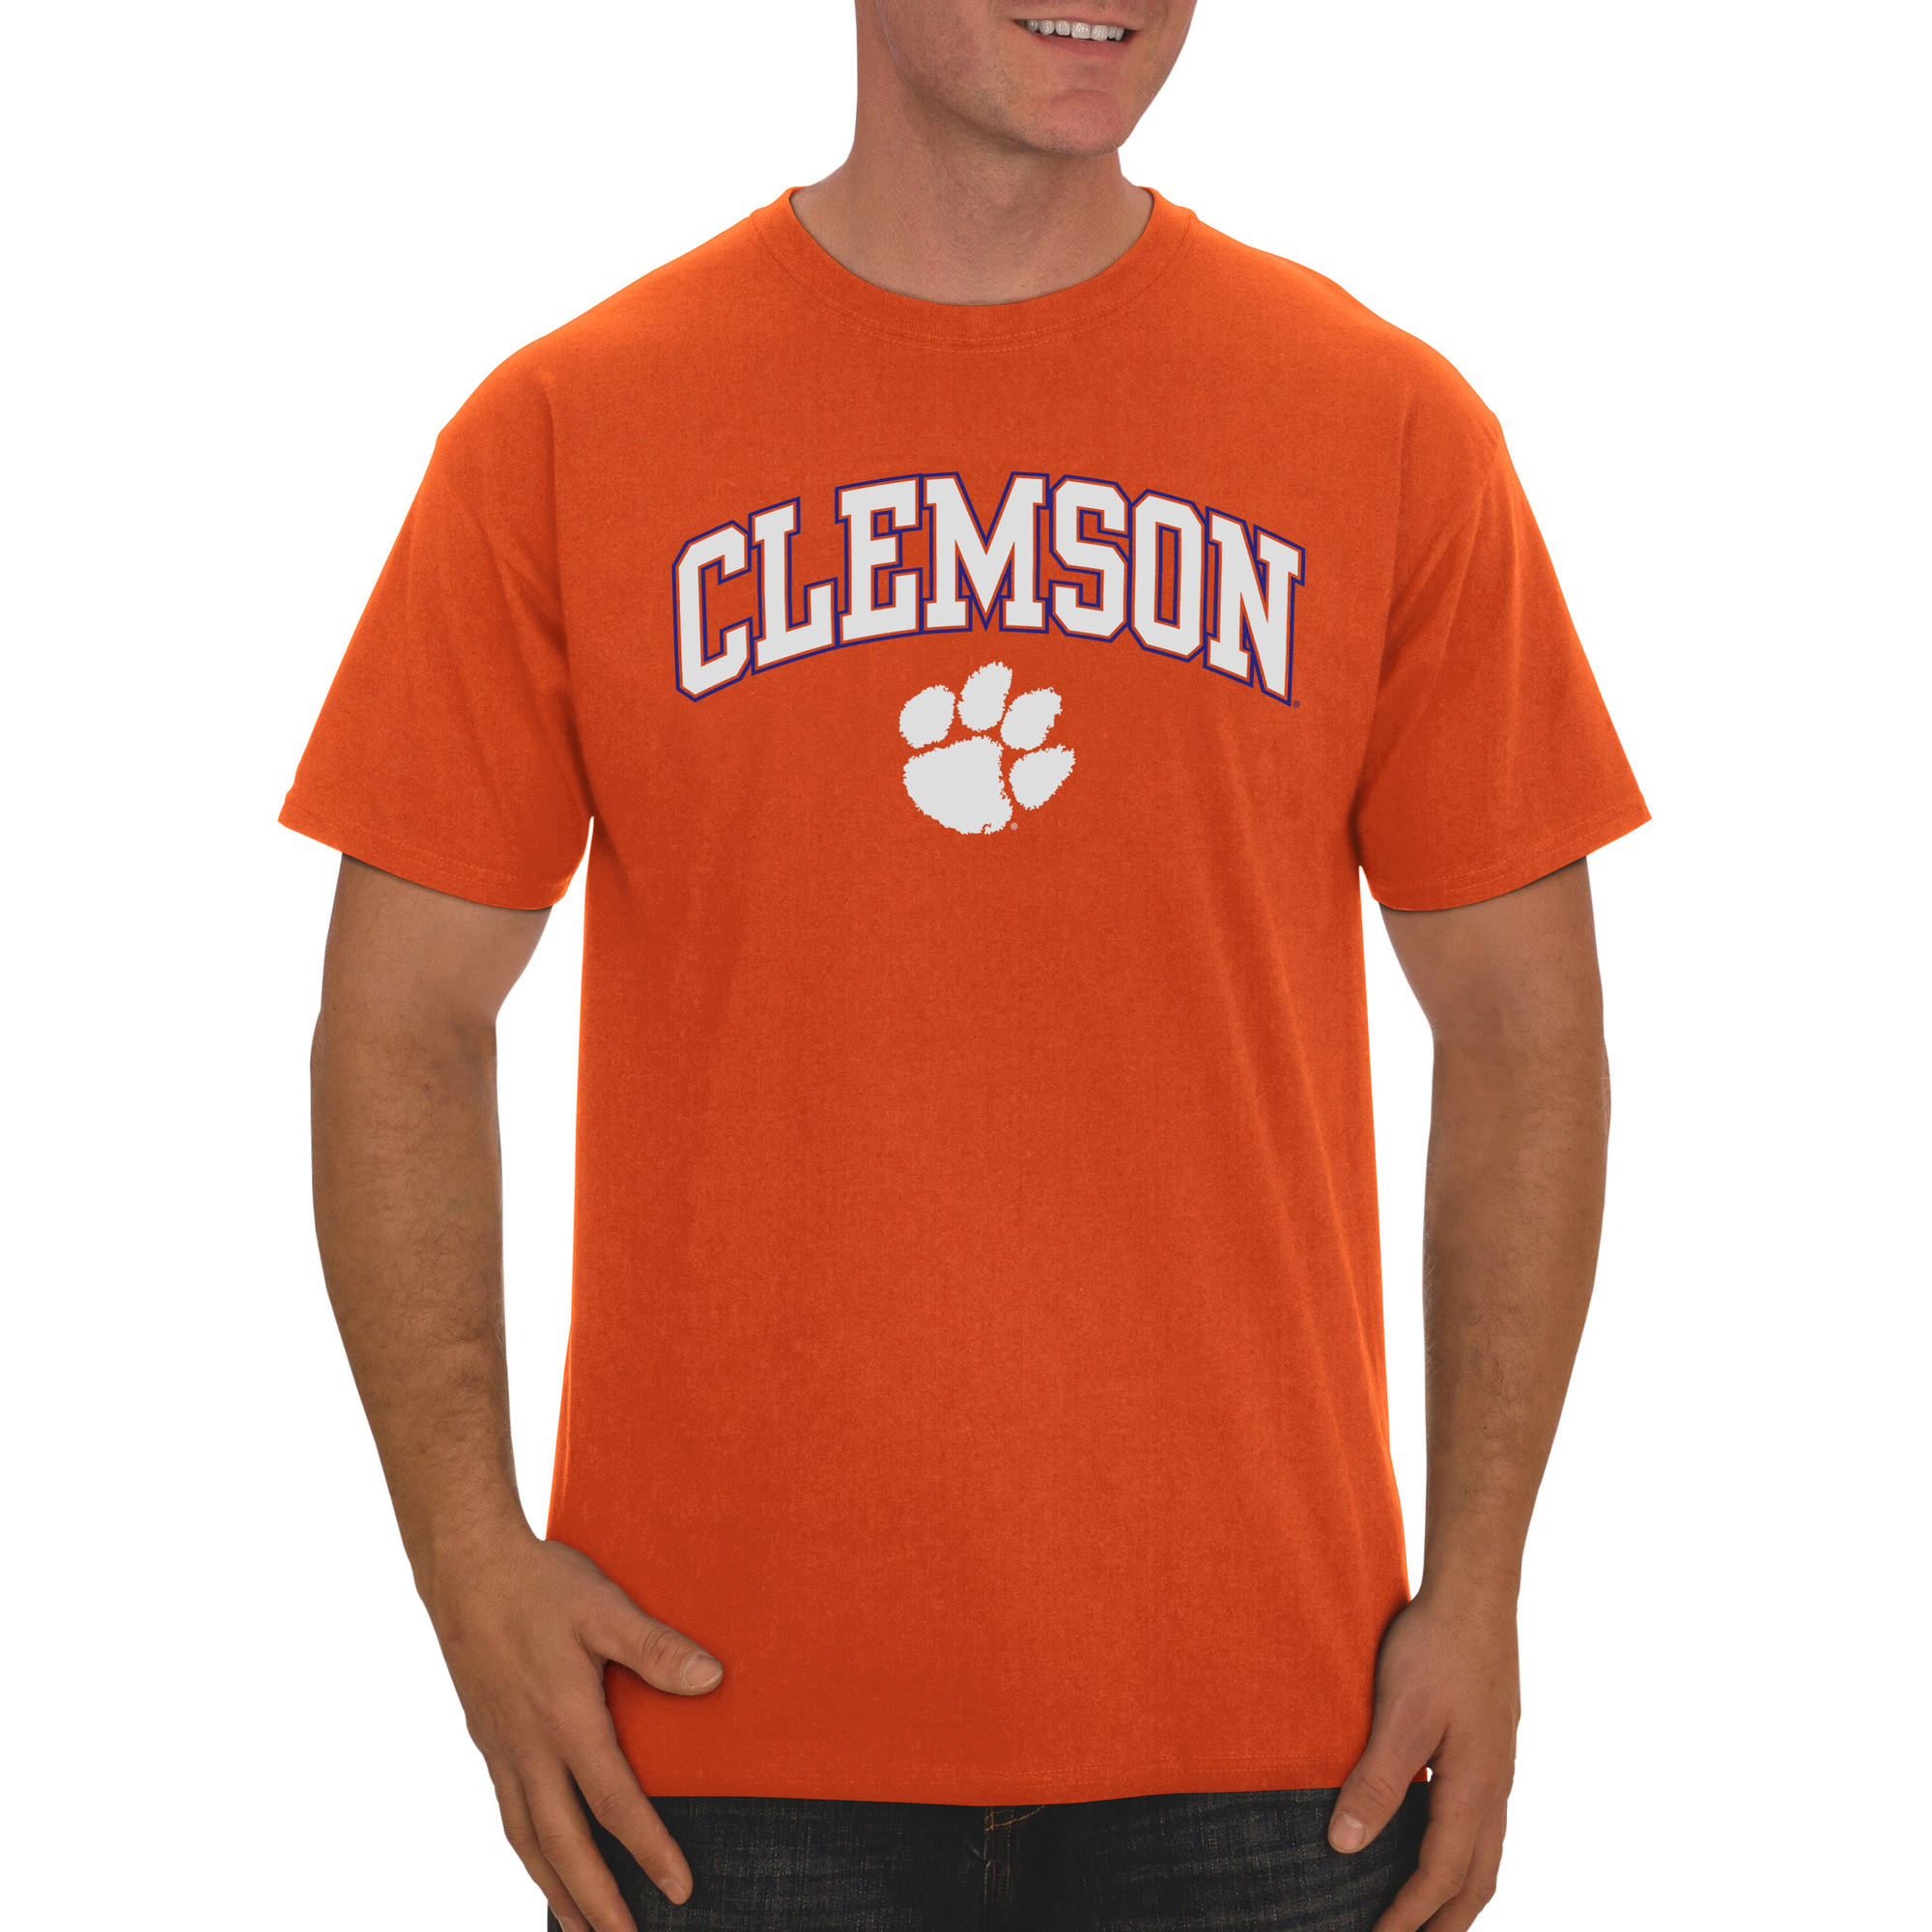 Russell NCAA Clemson Tigers Men s Classic Cotton T Shirt Walmart